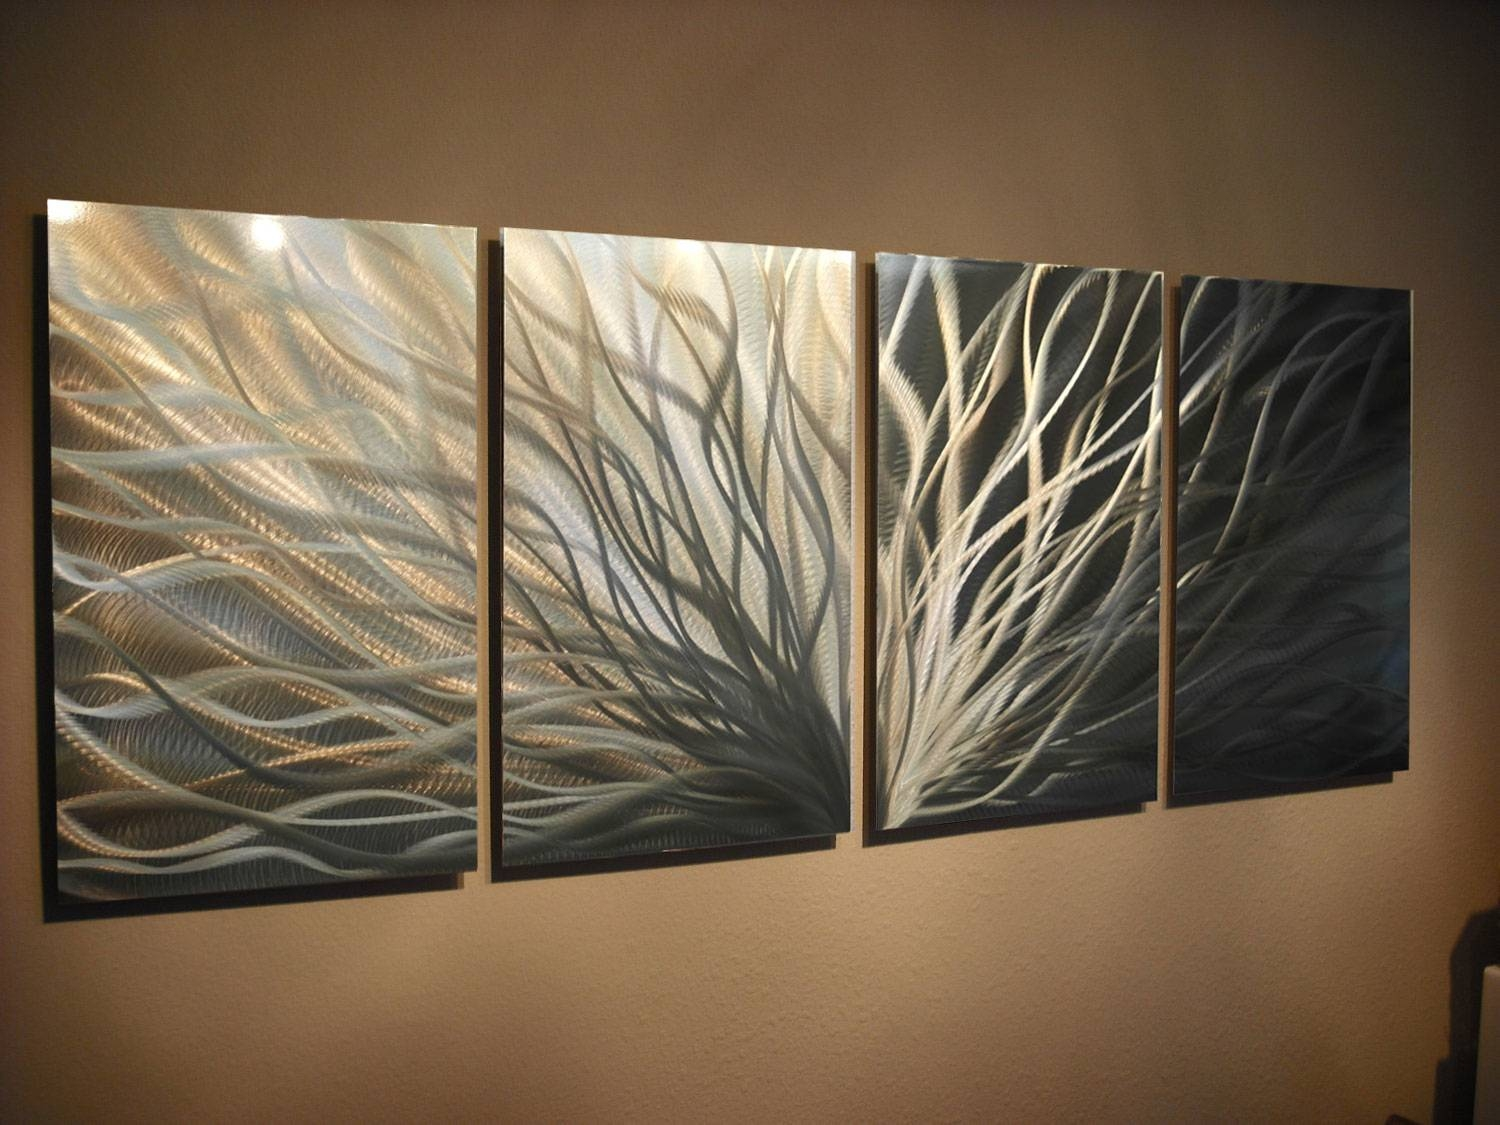 Abstract Metal Wall Art Radiance Gold Silver Contemporary Modern Inside Most Popular Silver And Gold Wall Art (View 2 of 15)